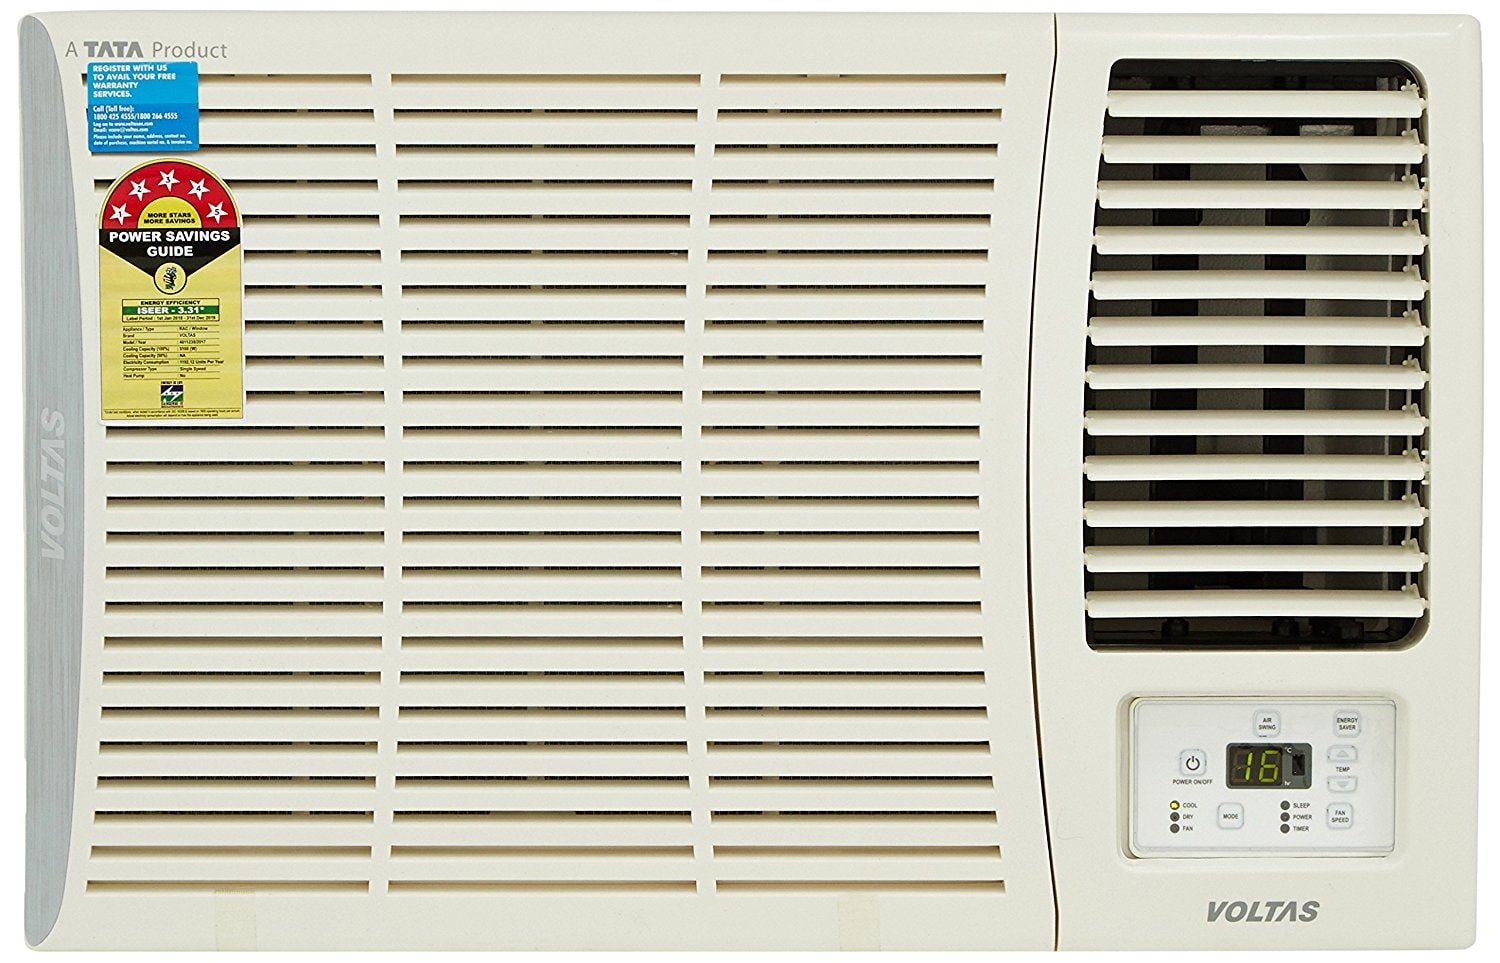 Voltas 1.5 Ton 5 Star Window AC (185 DZA, White)